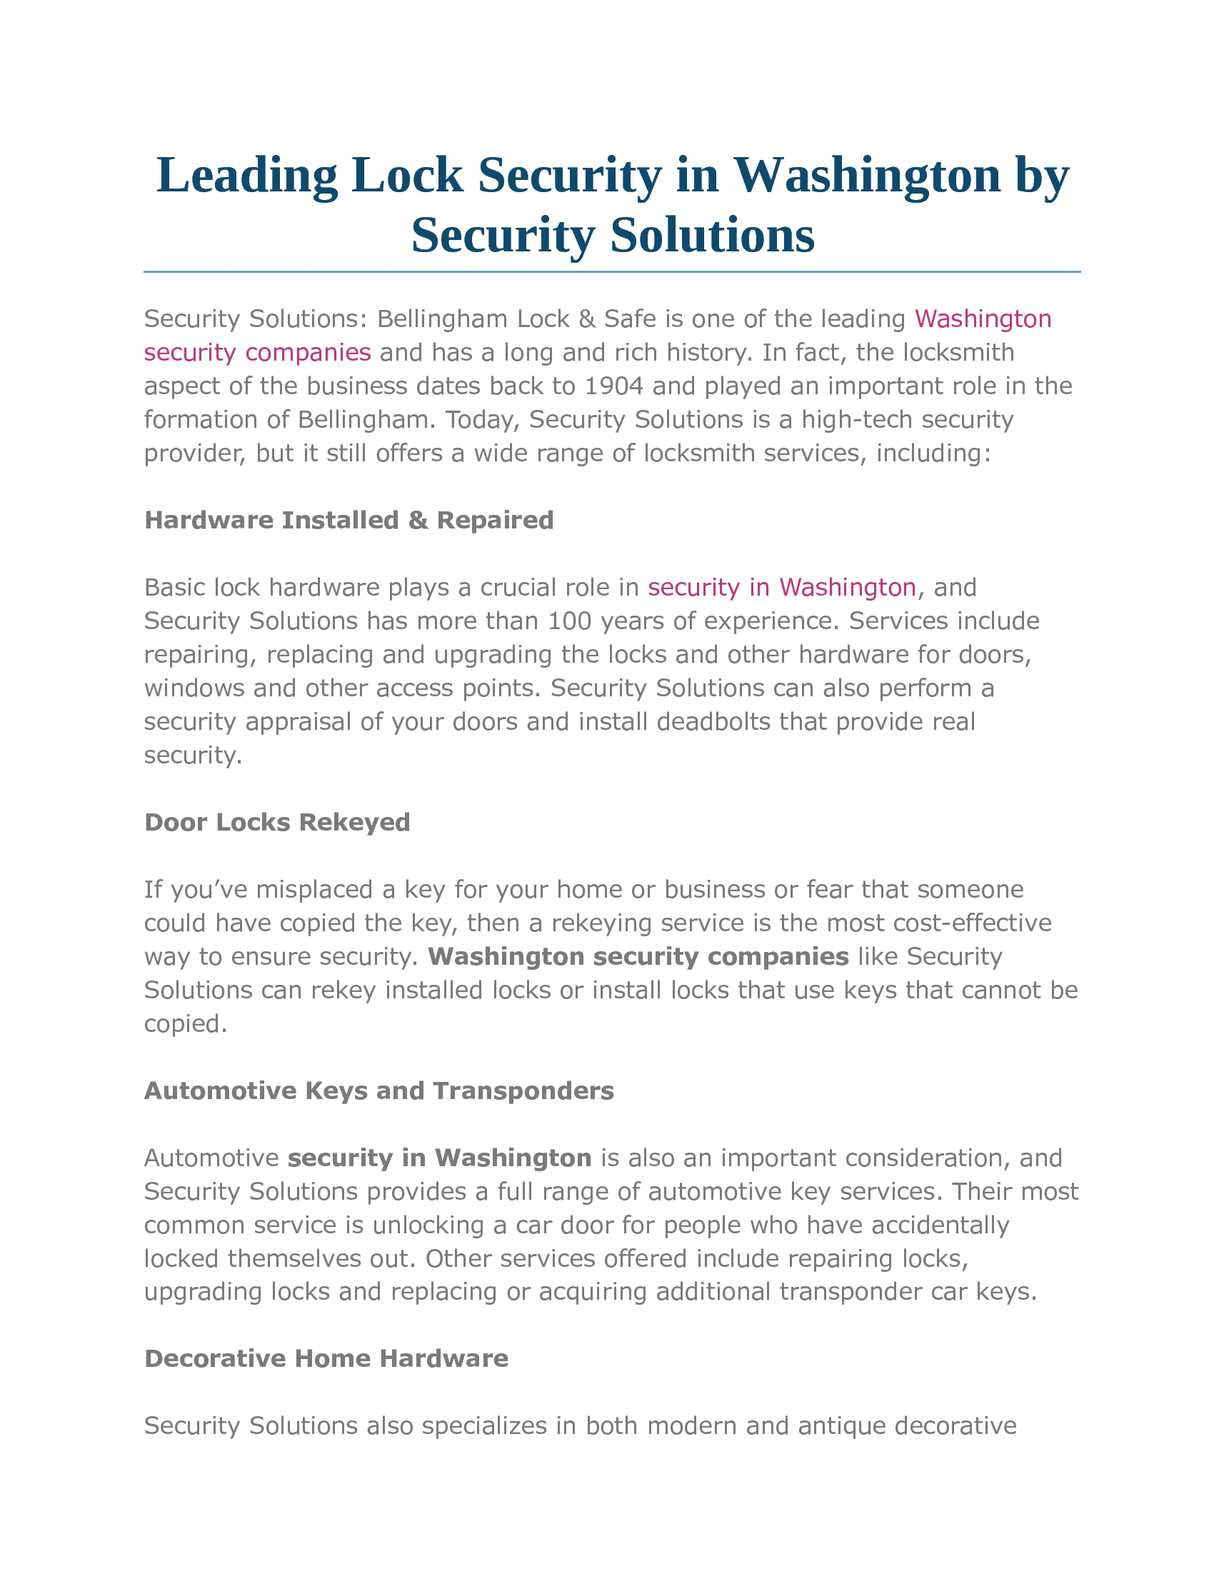 Calaméo - Leading Lock Security in Washington by Security